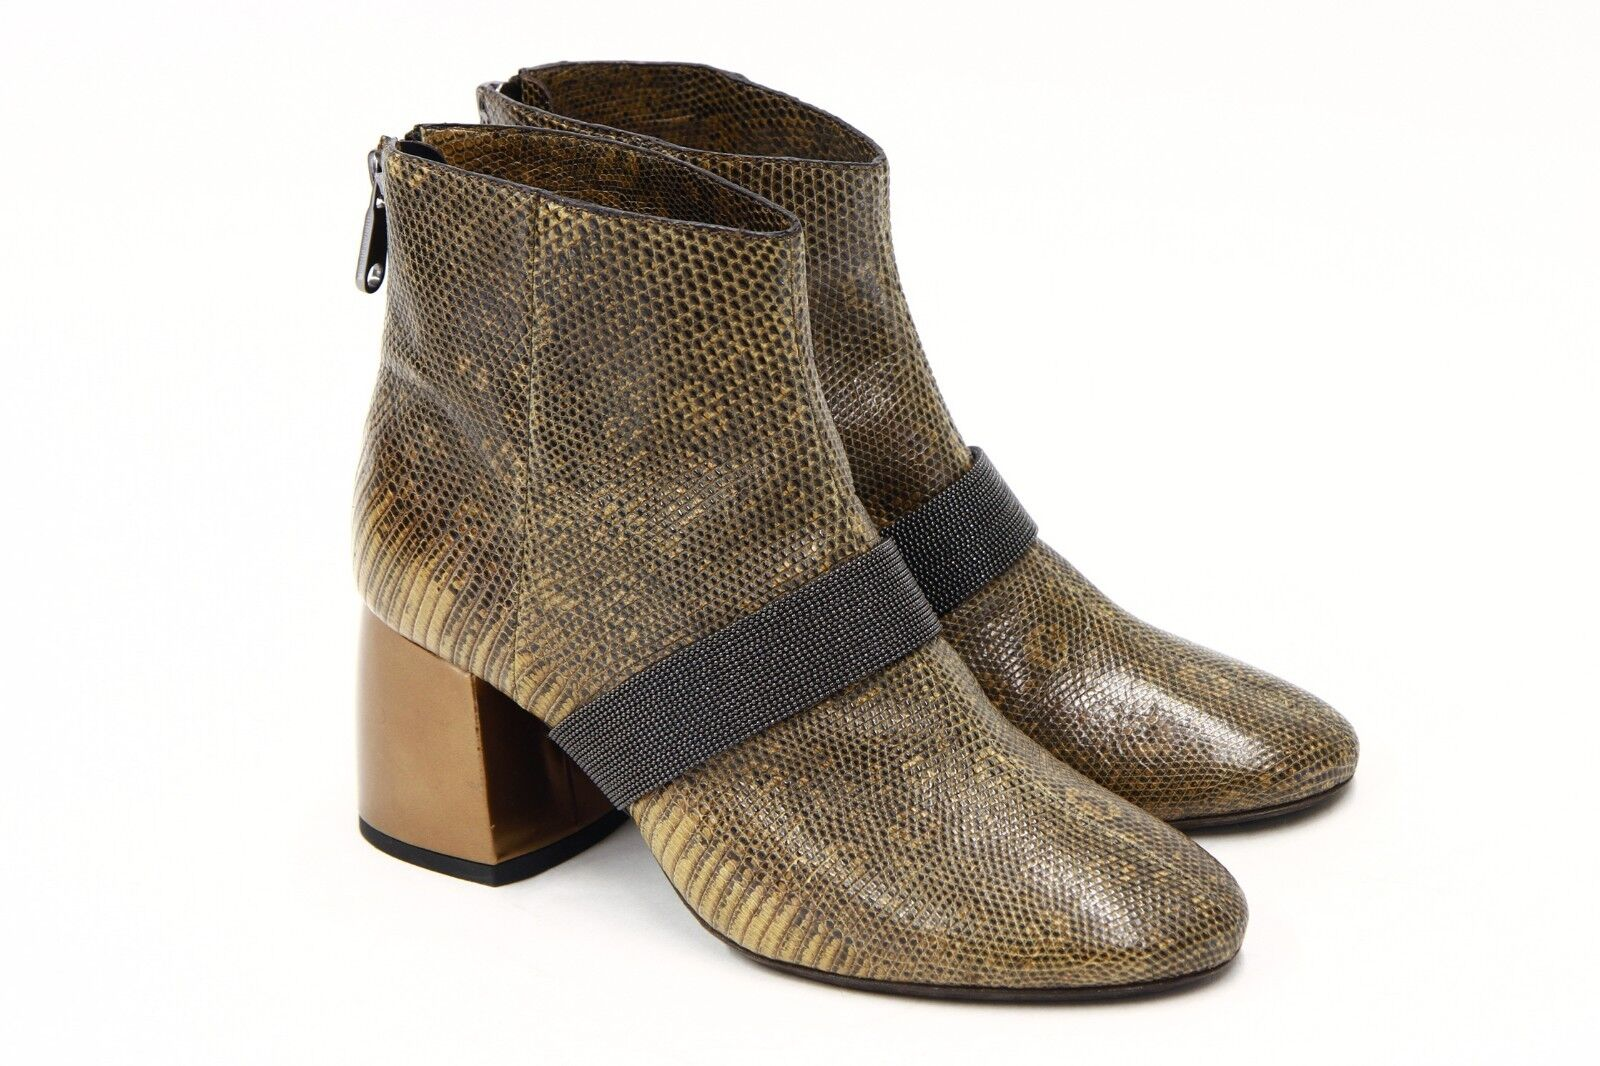 NWOB 3995 Brunello Cucinelli Texturot Leather Monili Bead Ankle Stiefel Stiefel Stiefel 37 7US A181 a1e26f